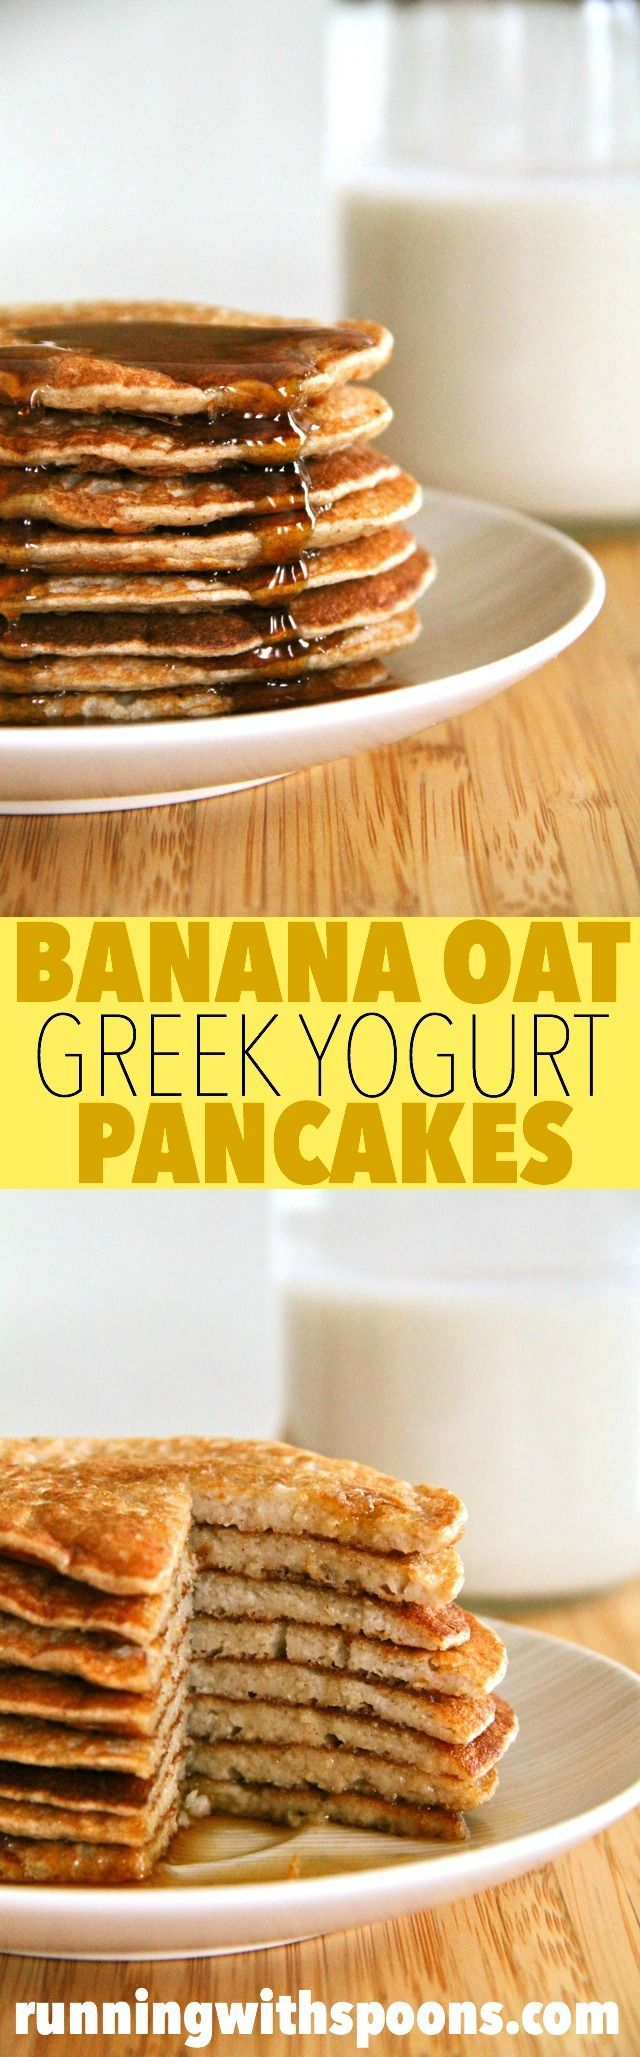 Banana Oat Greek Yogurt Pancakes -- with under 300 calories and 20g of protein for the ENTIRE recipe, these pancakes are a great way to start your day!    runningwithspoons.com